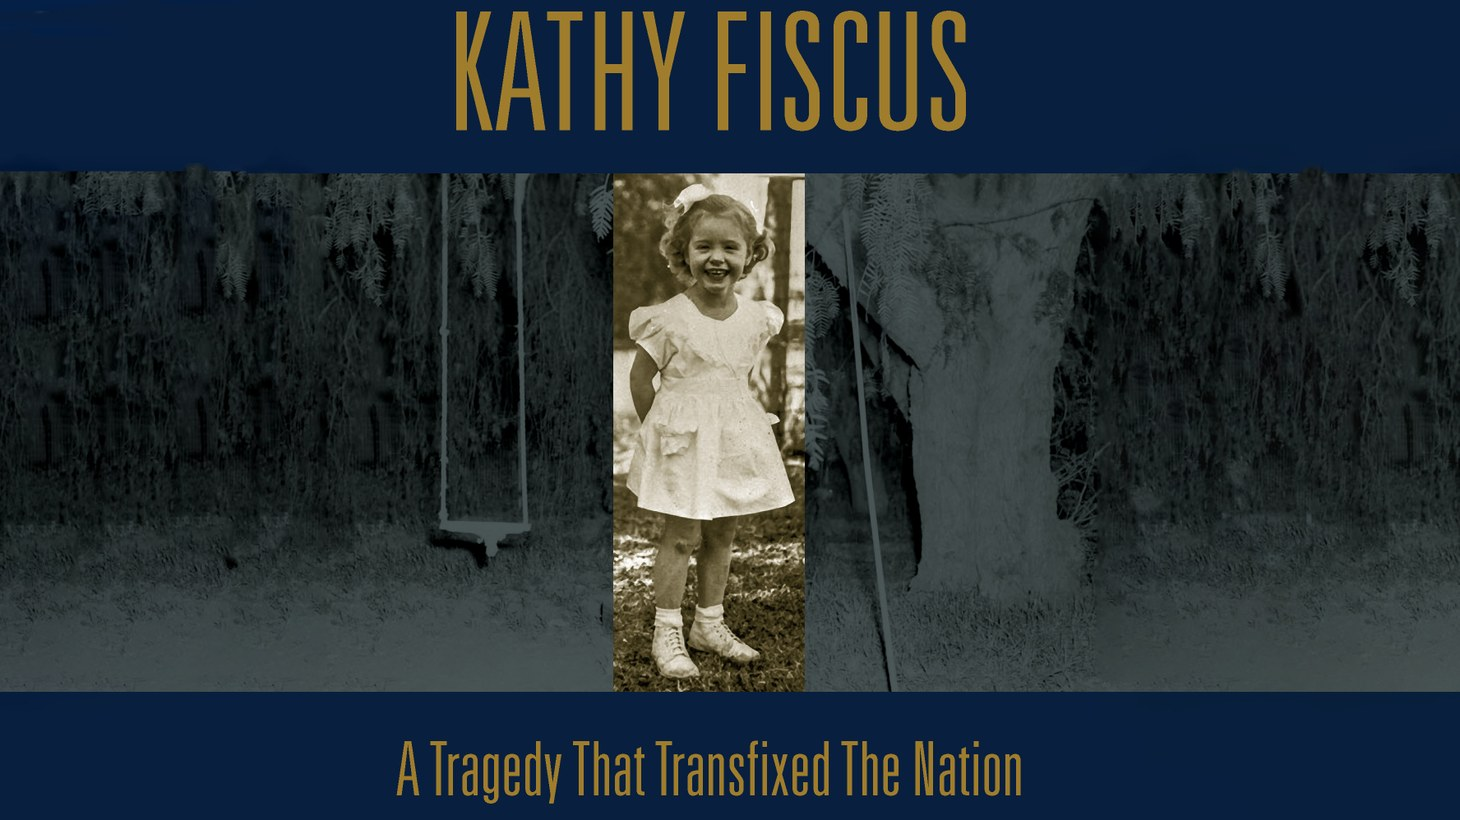 The rescue of Kathy Fiscus, who fell into a well in San Marino in 1949, was filmed live on television. That changed media in a big way, says author and history professor William Deverell.